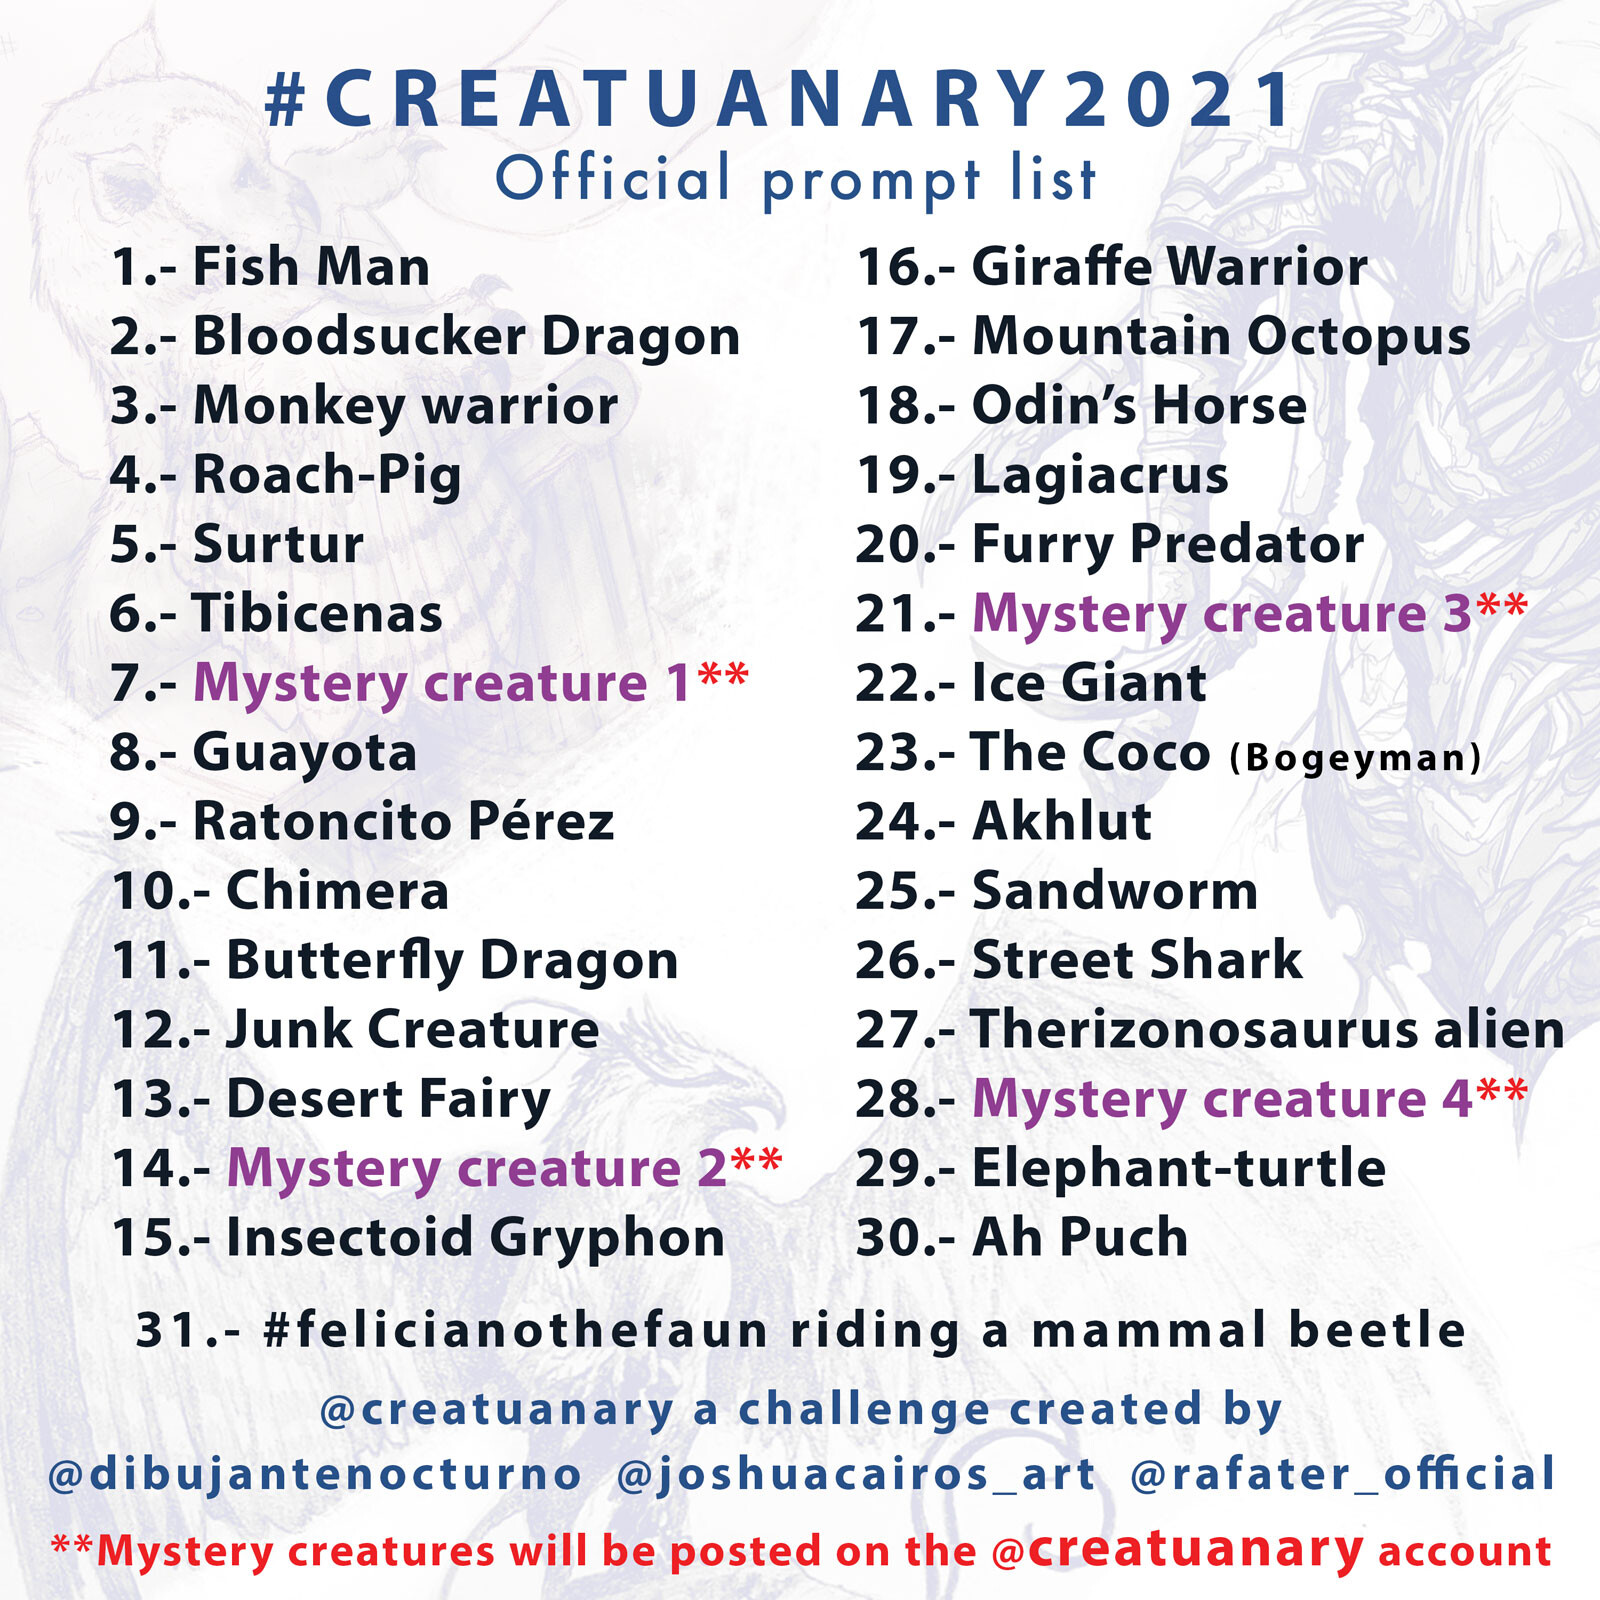 CREATUANARY 2021 - Official prompt list